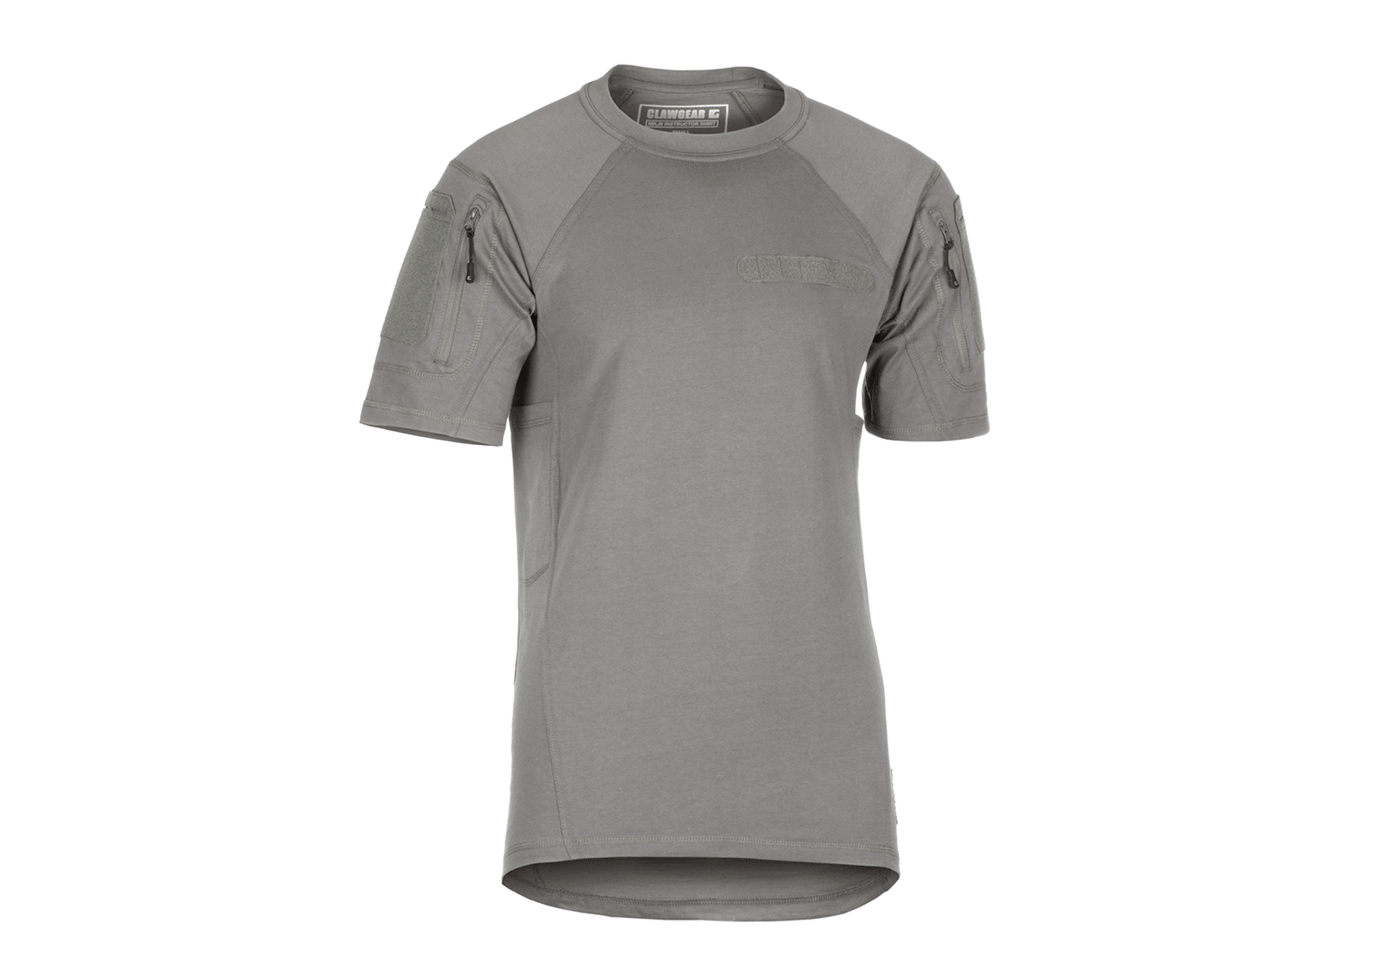 Clawgear MK.II INSTRUCTOR Shirt, Solid Rock